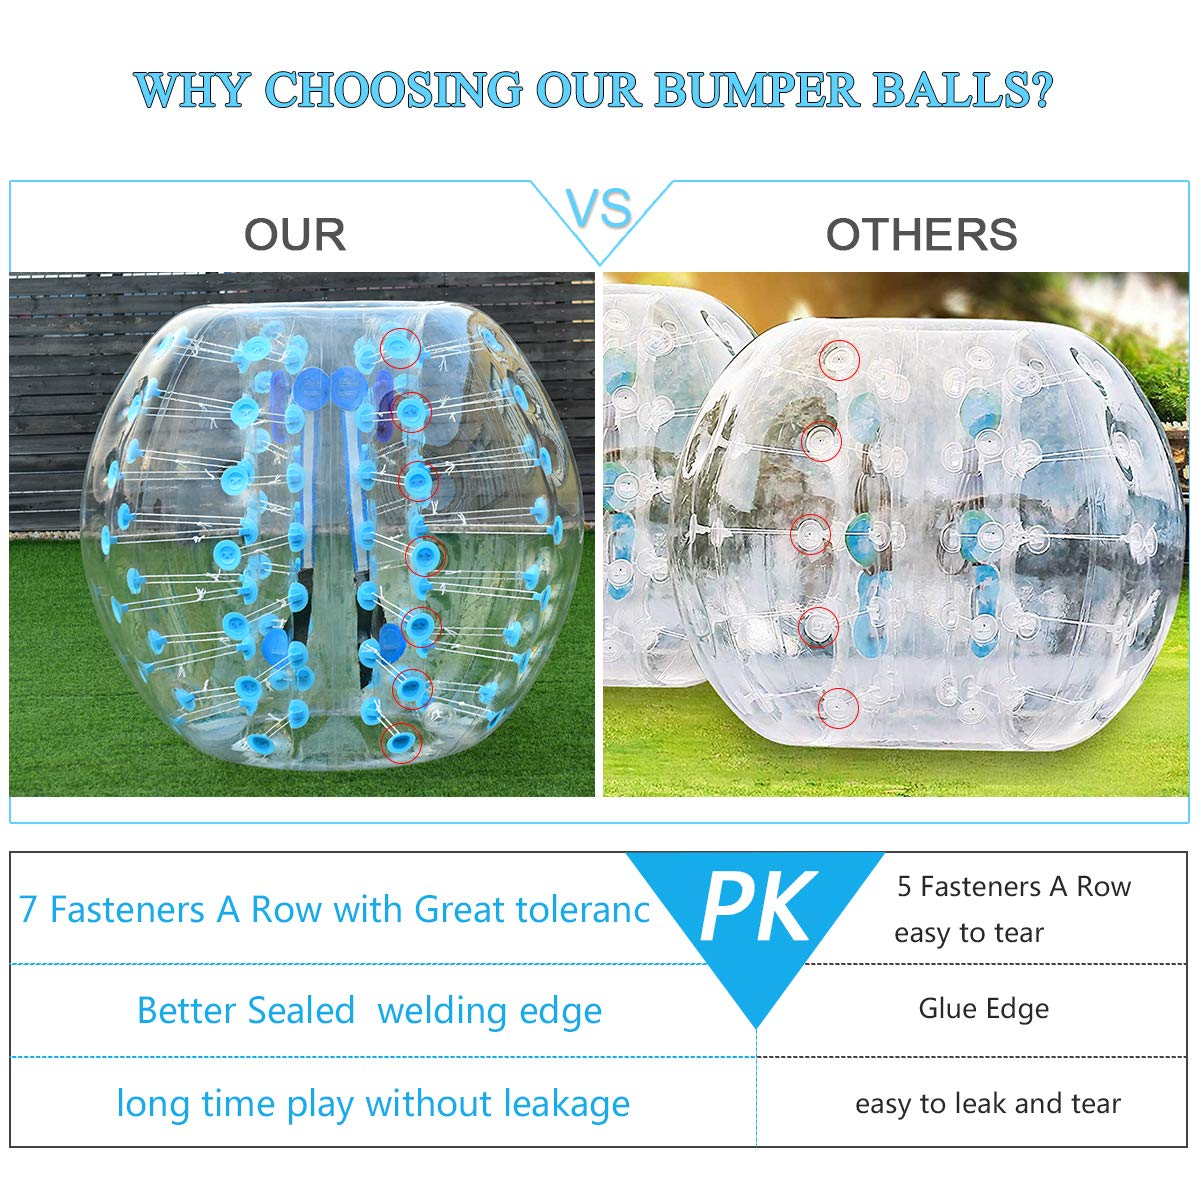 Costzon Inflatable Bumper Soccer Ball, Dia 5ft (1.5m) Giant Human Hamster Bubble Ball, 8mm Thickness Transparent PVC Zorb Ball for Kids, Teens Outdoor Team Gaming Play (Light Blue) by Costzon (Image #5)